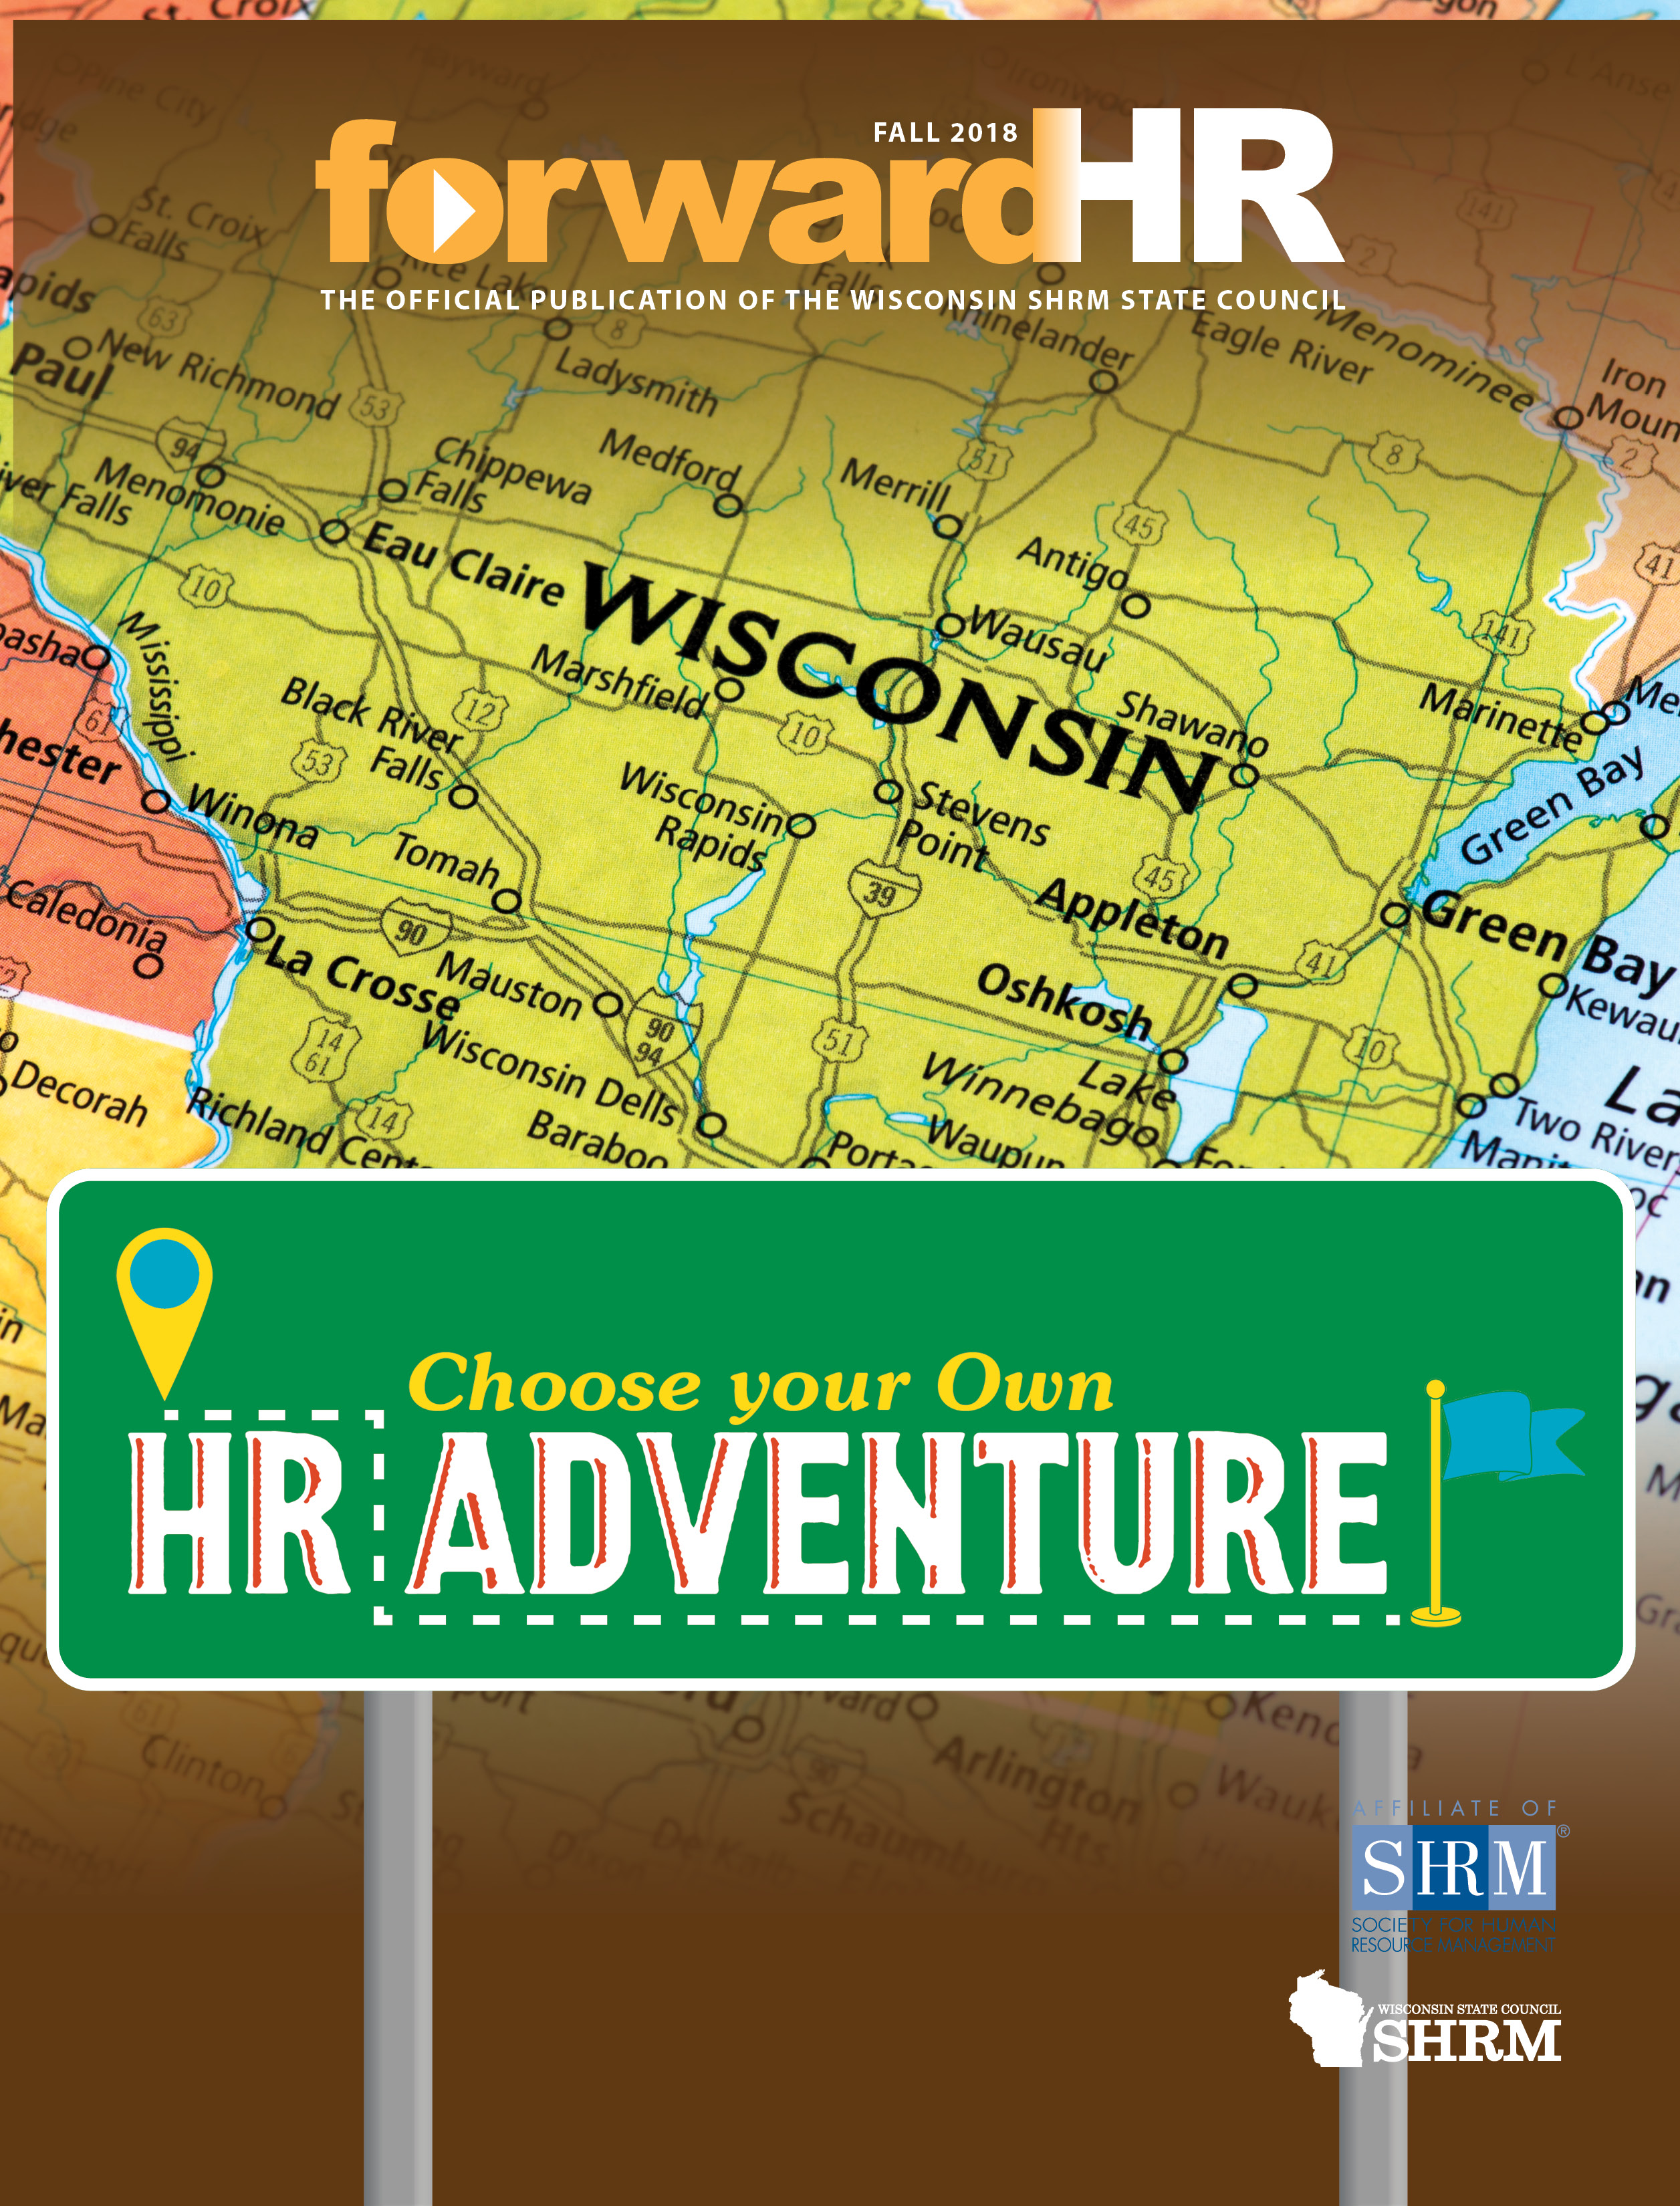 Home | Wisconsin State Council SHRM